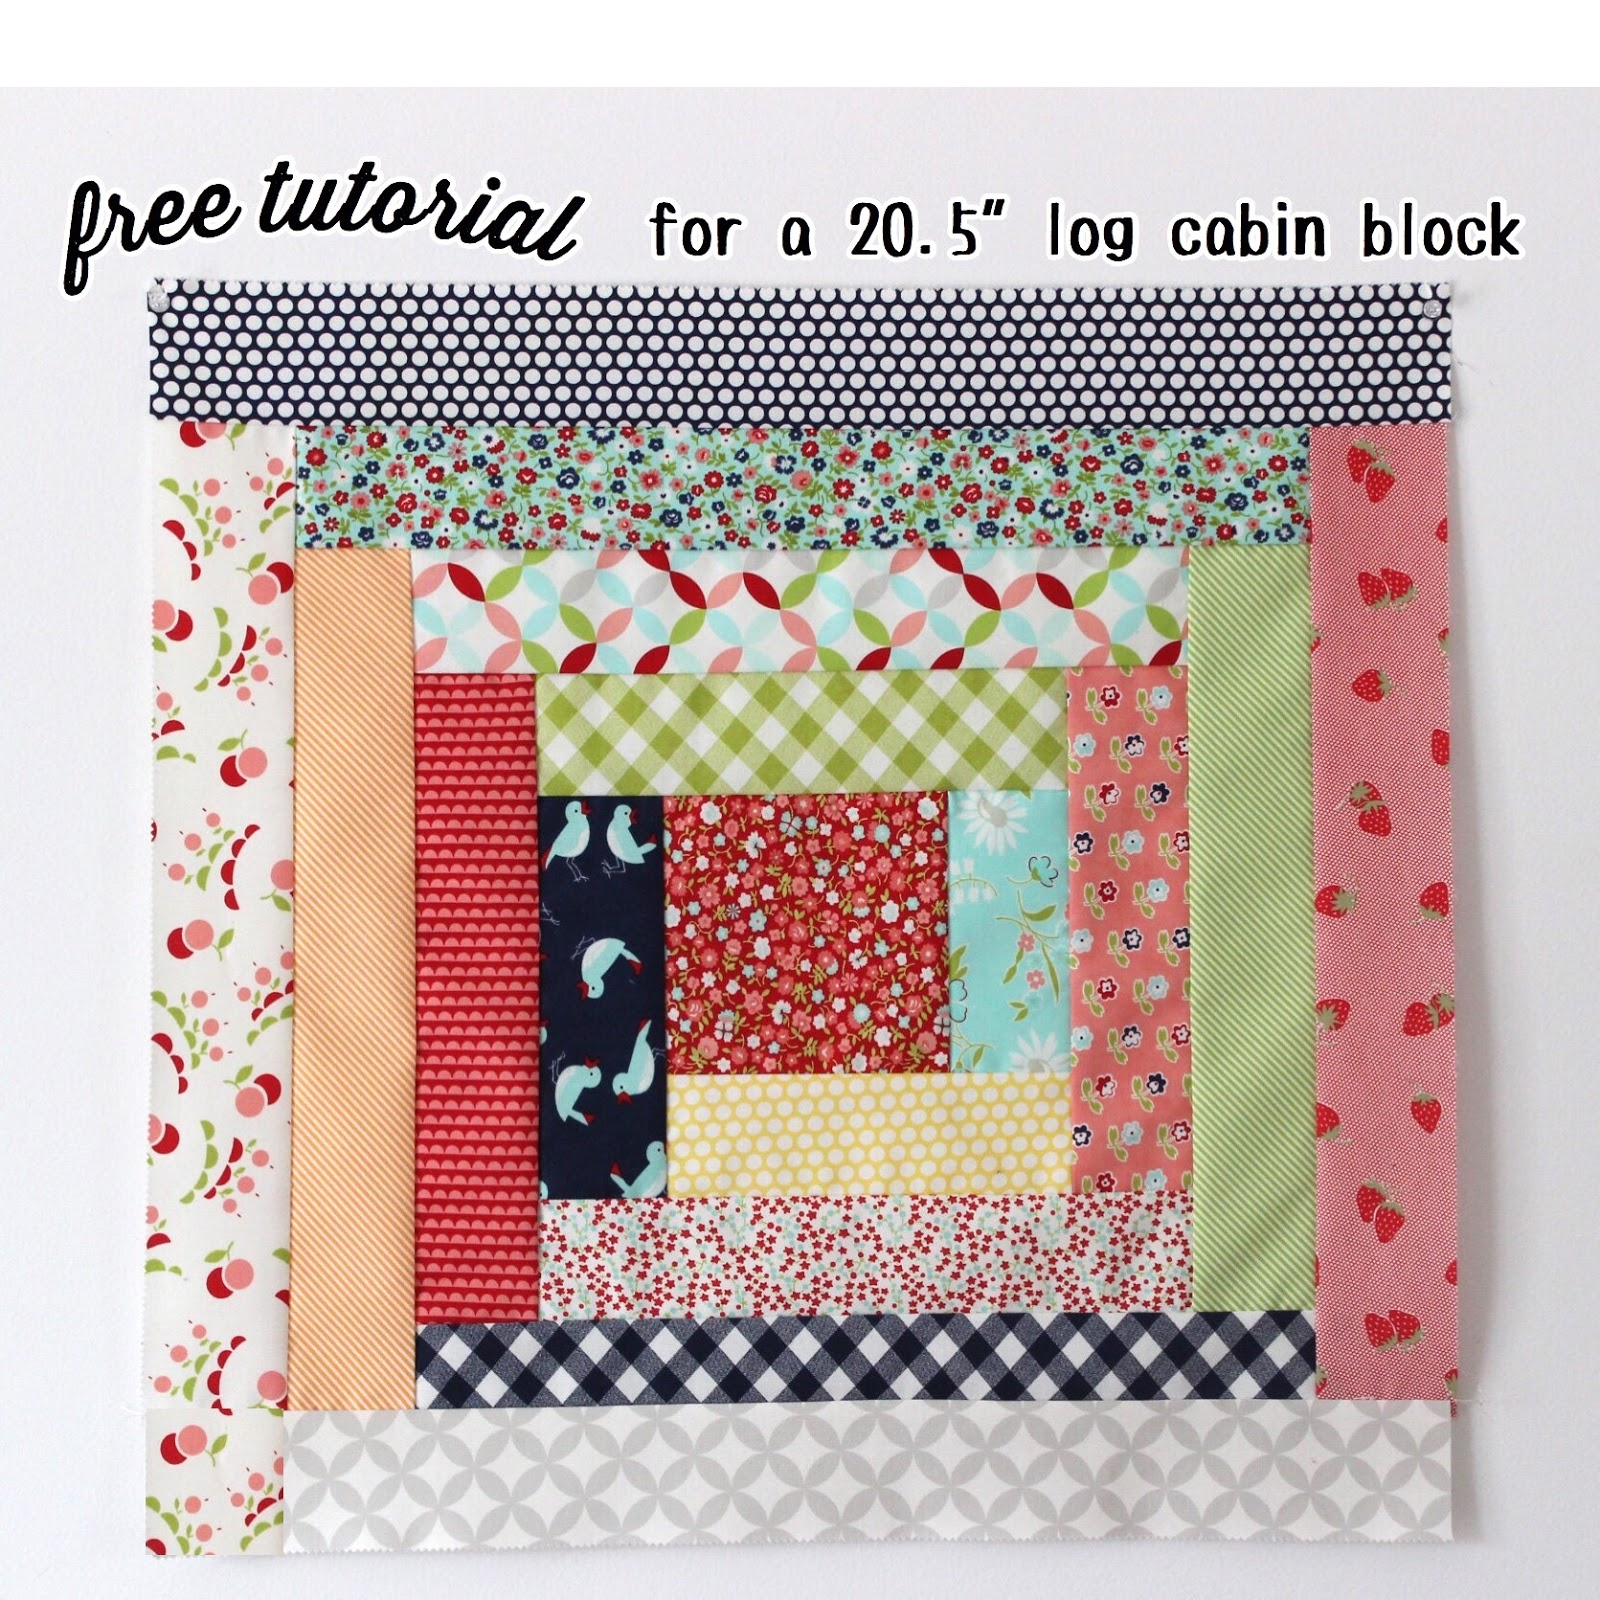 Free 205 Log Cabin Block Tutorial Hilltop Custom Designs